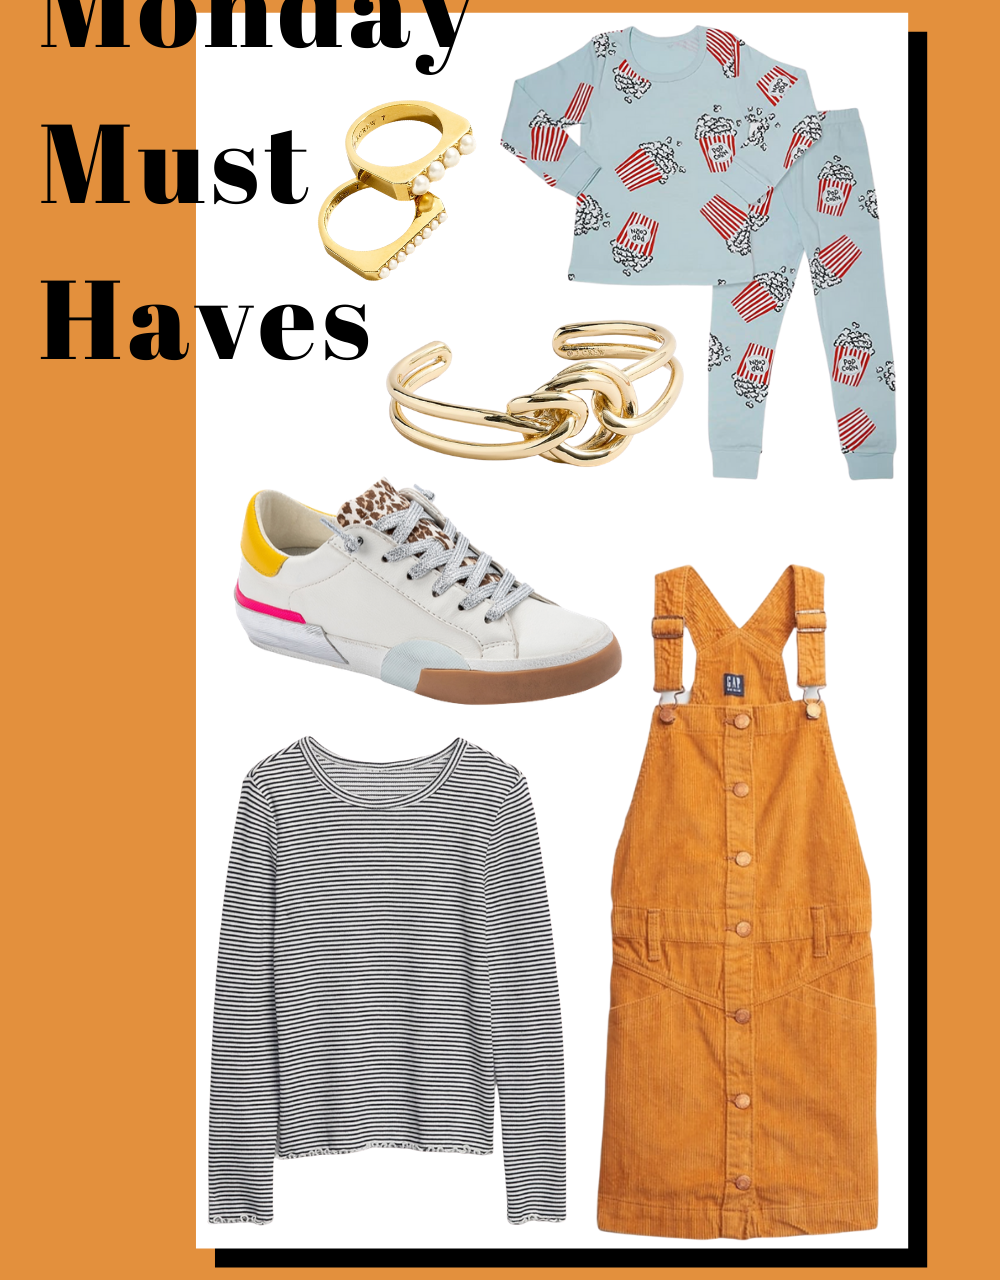 Monday Must Haves: October 19, 2020